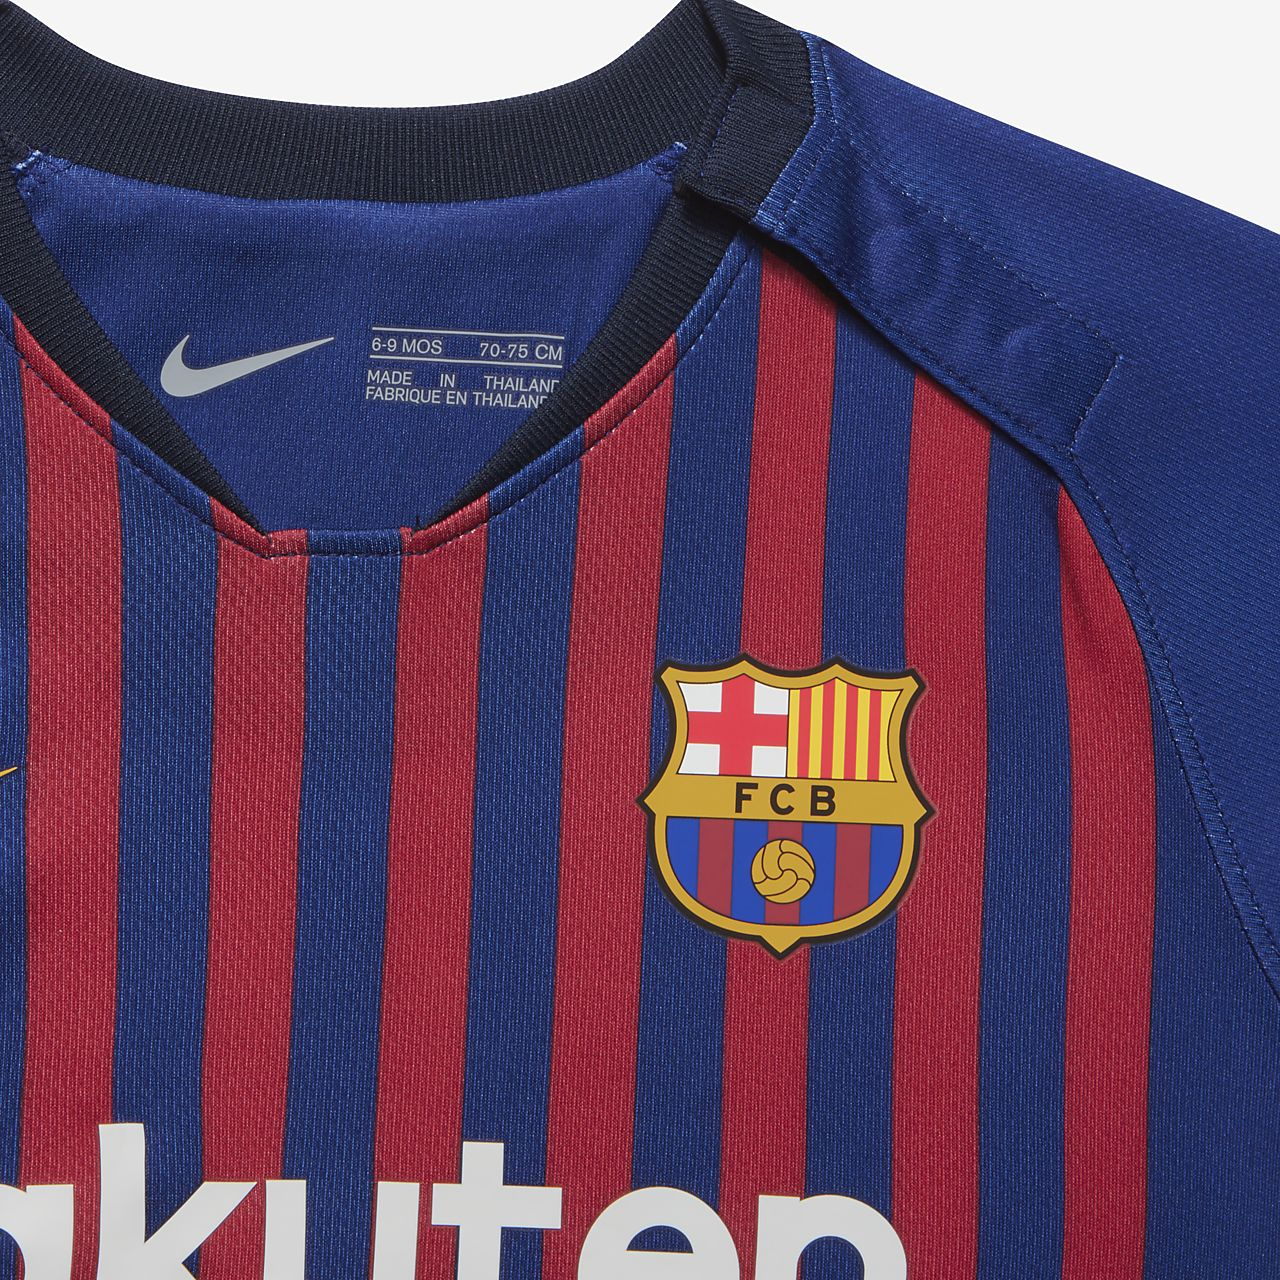 984512817ea 2018 19 FC Barcelona Stadium Home Baby Football Kit. Nike.com CA